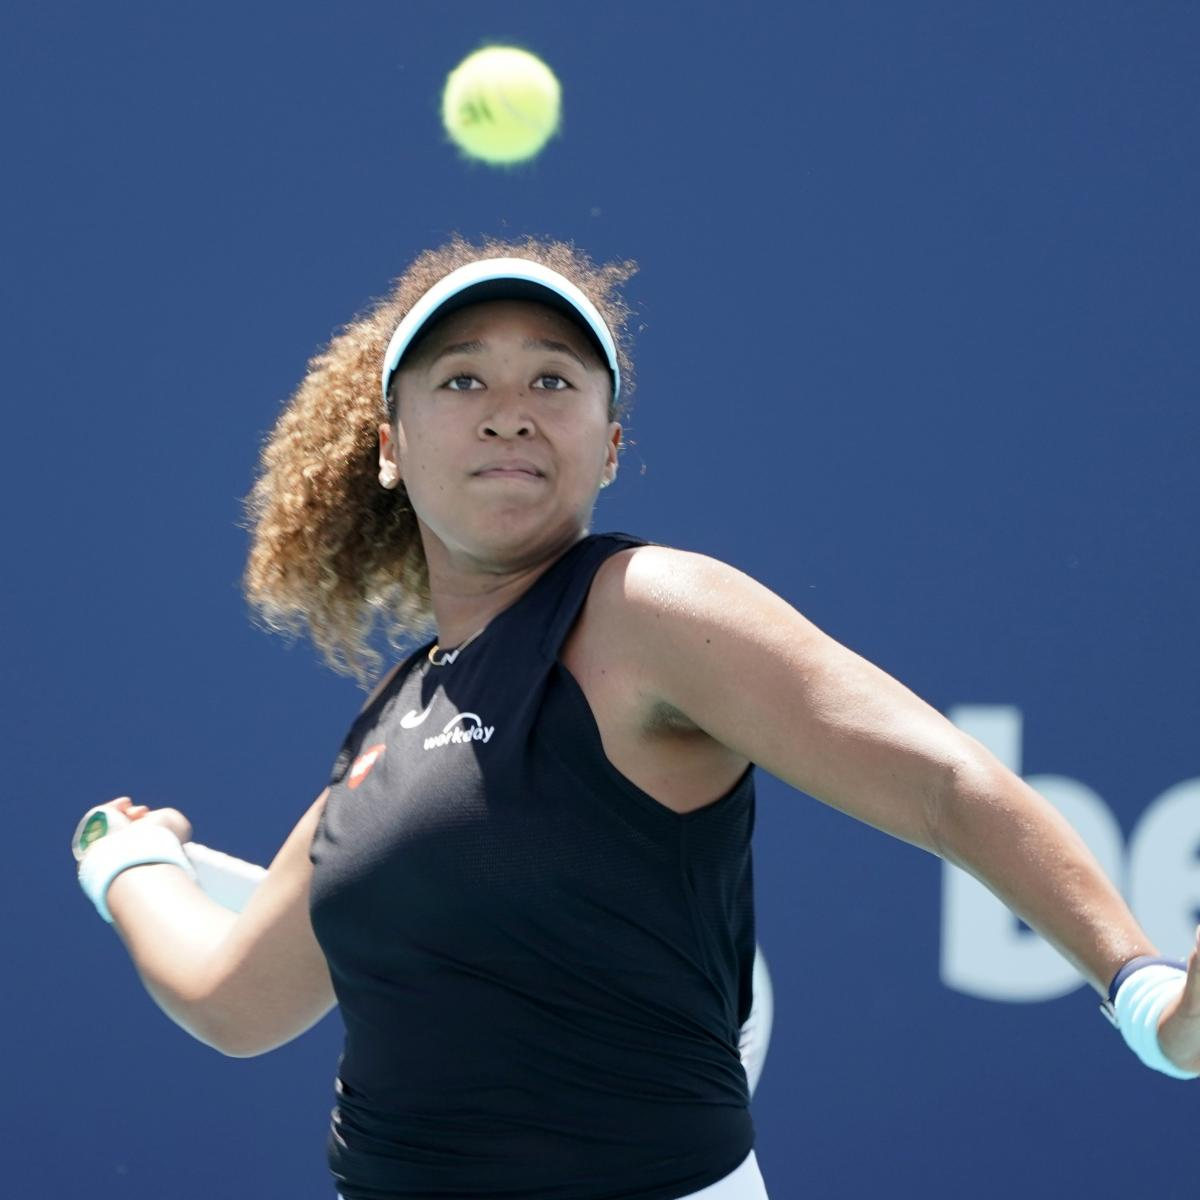 Miami Open Masters 2021 Results: Naomi Osaka's Win Highlights Friday's Results thumbnail